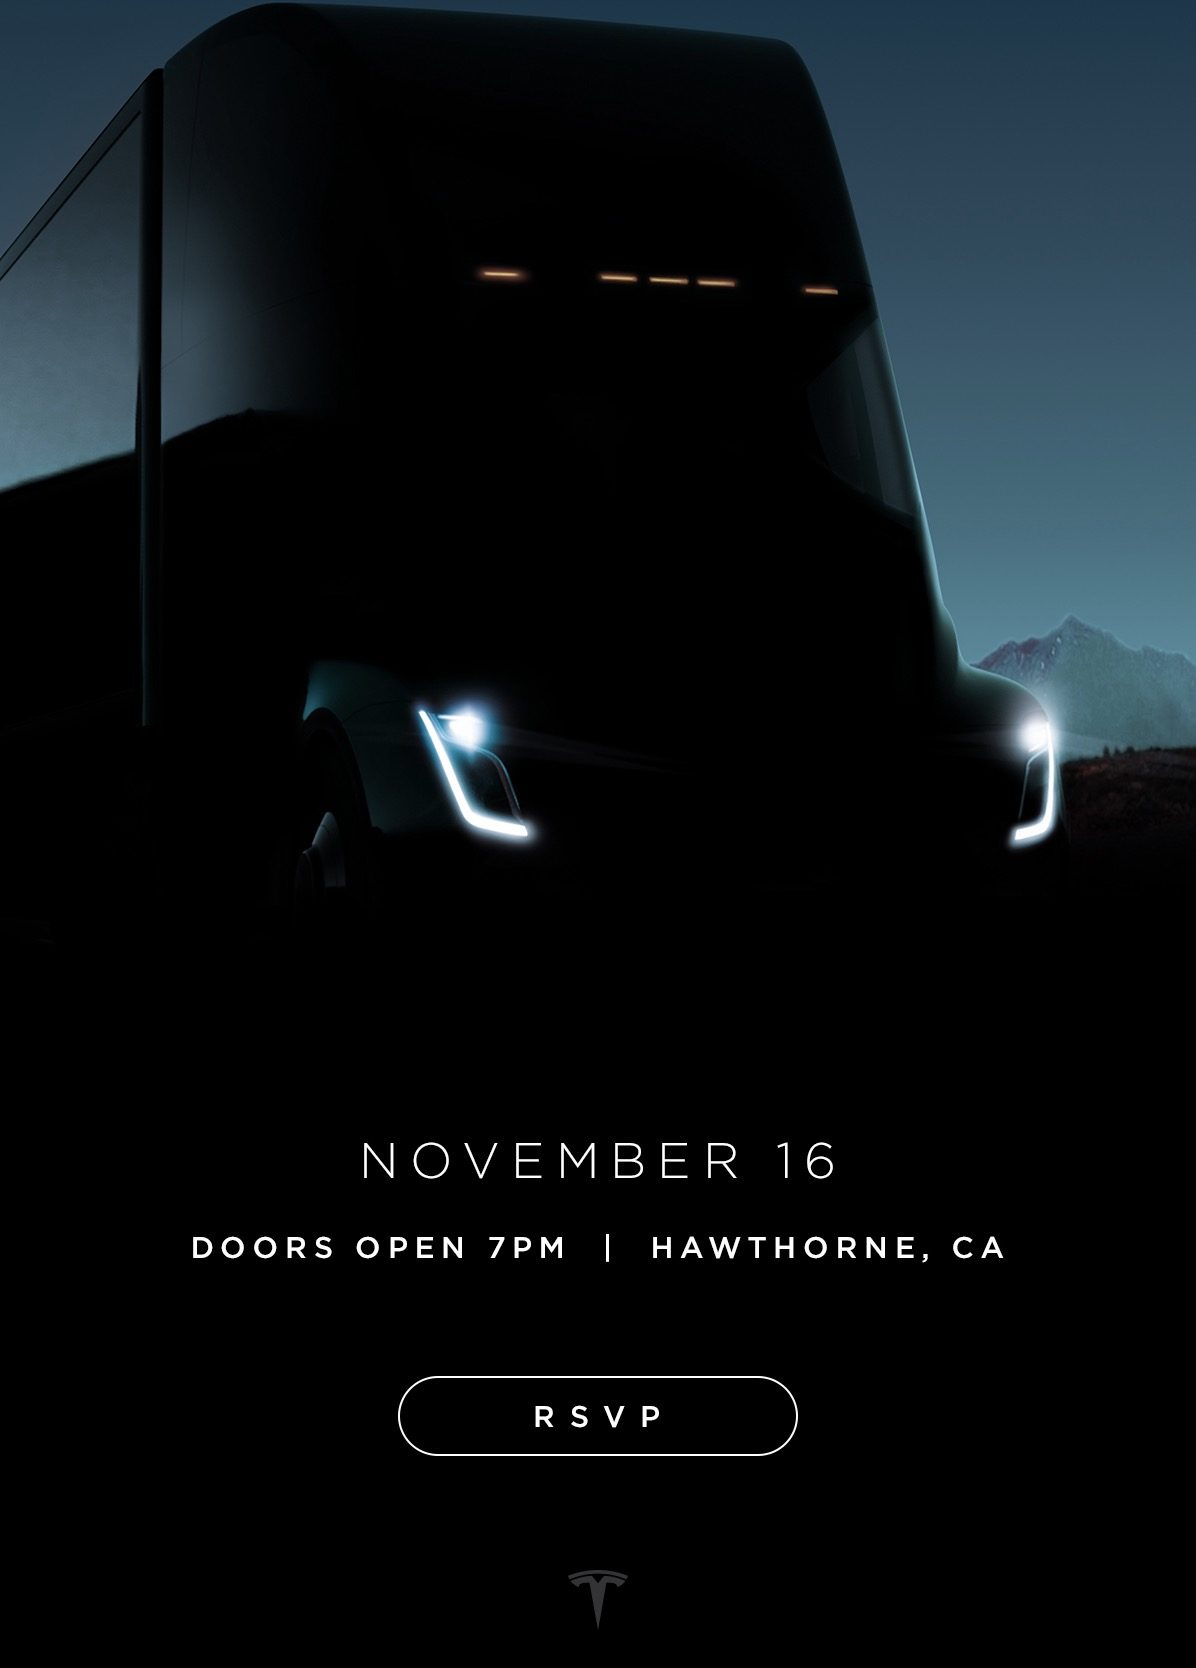 Tesla Semi invitation